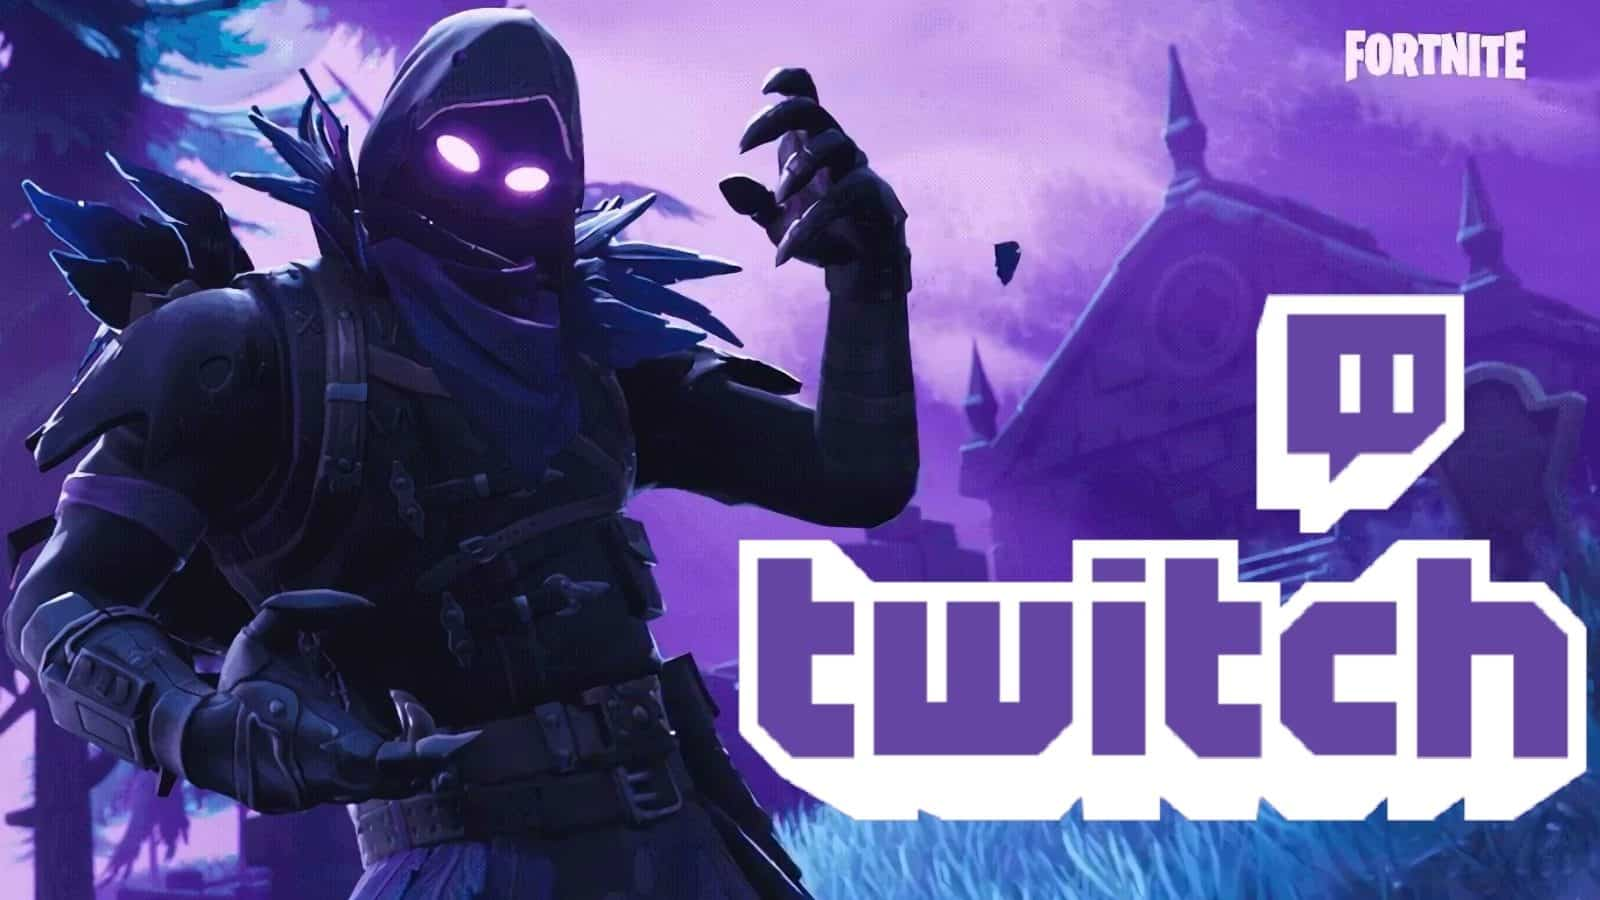 HOW TO STREAM FORTNITE ON TWITCH?